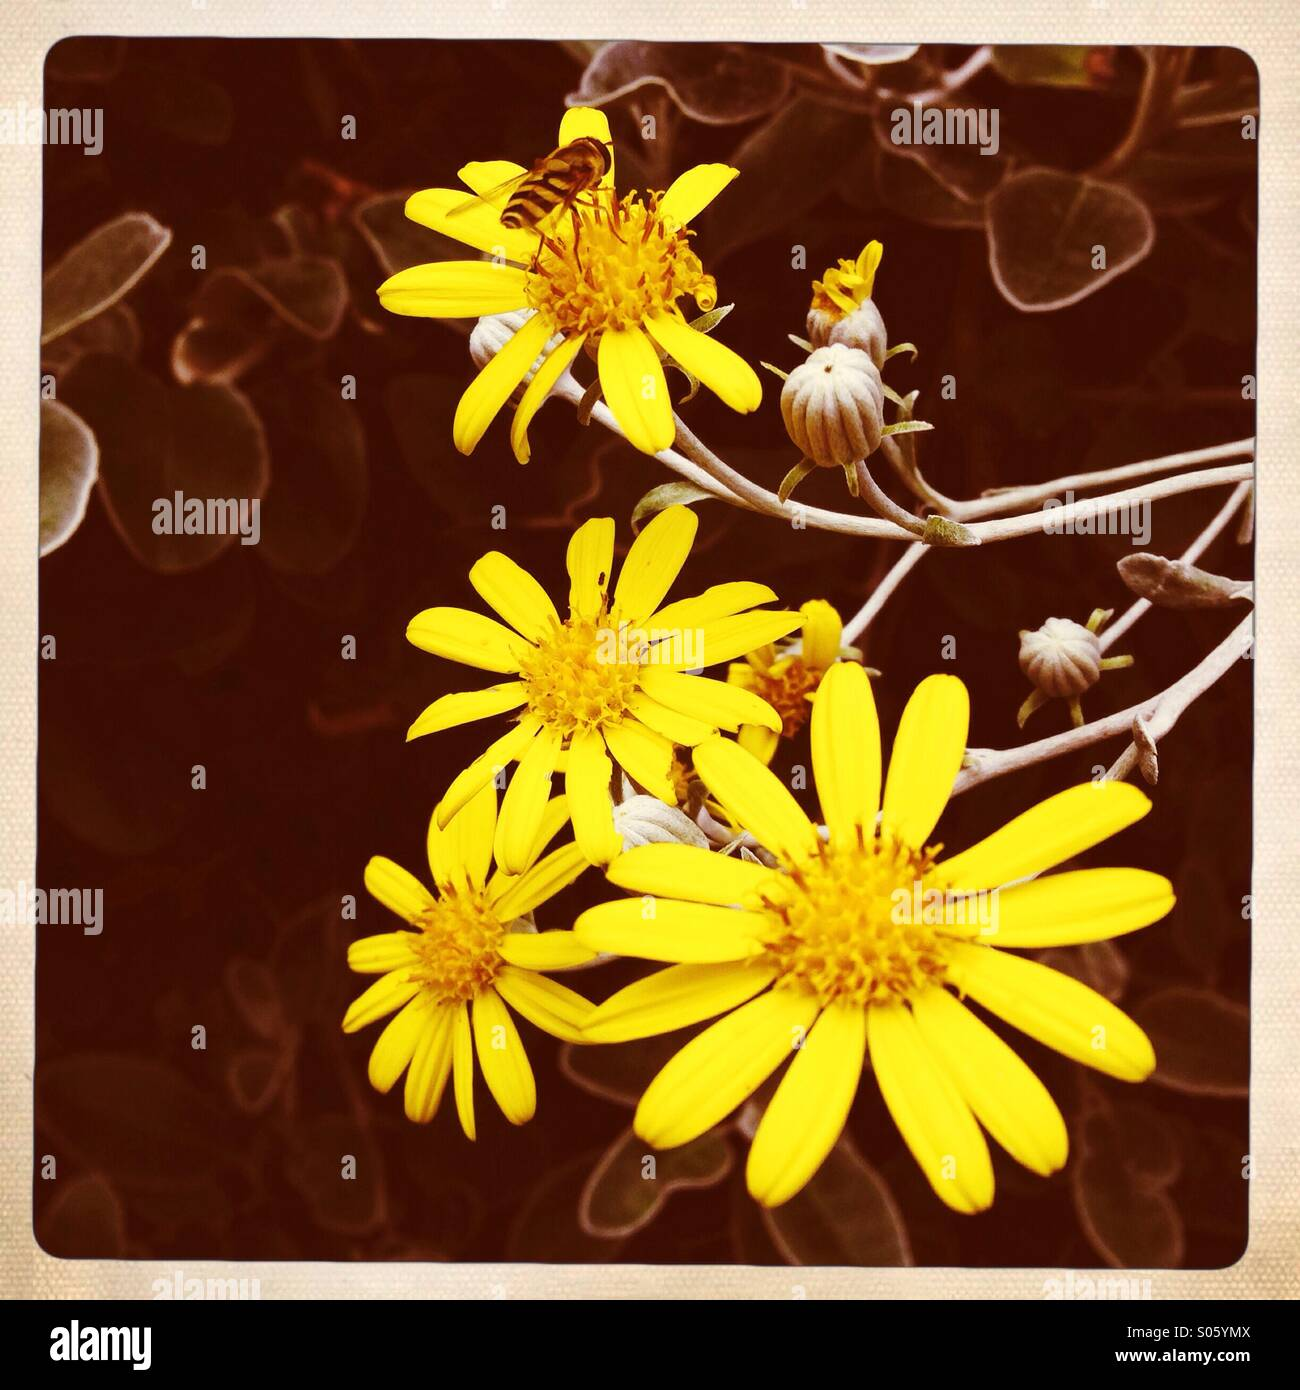 Pretty little yellow flowers (asters?) - Stock Image